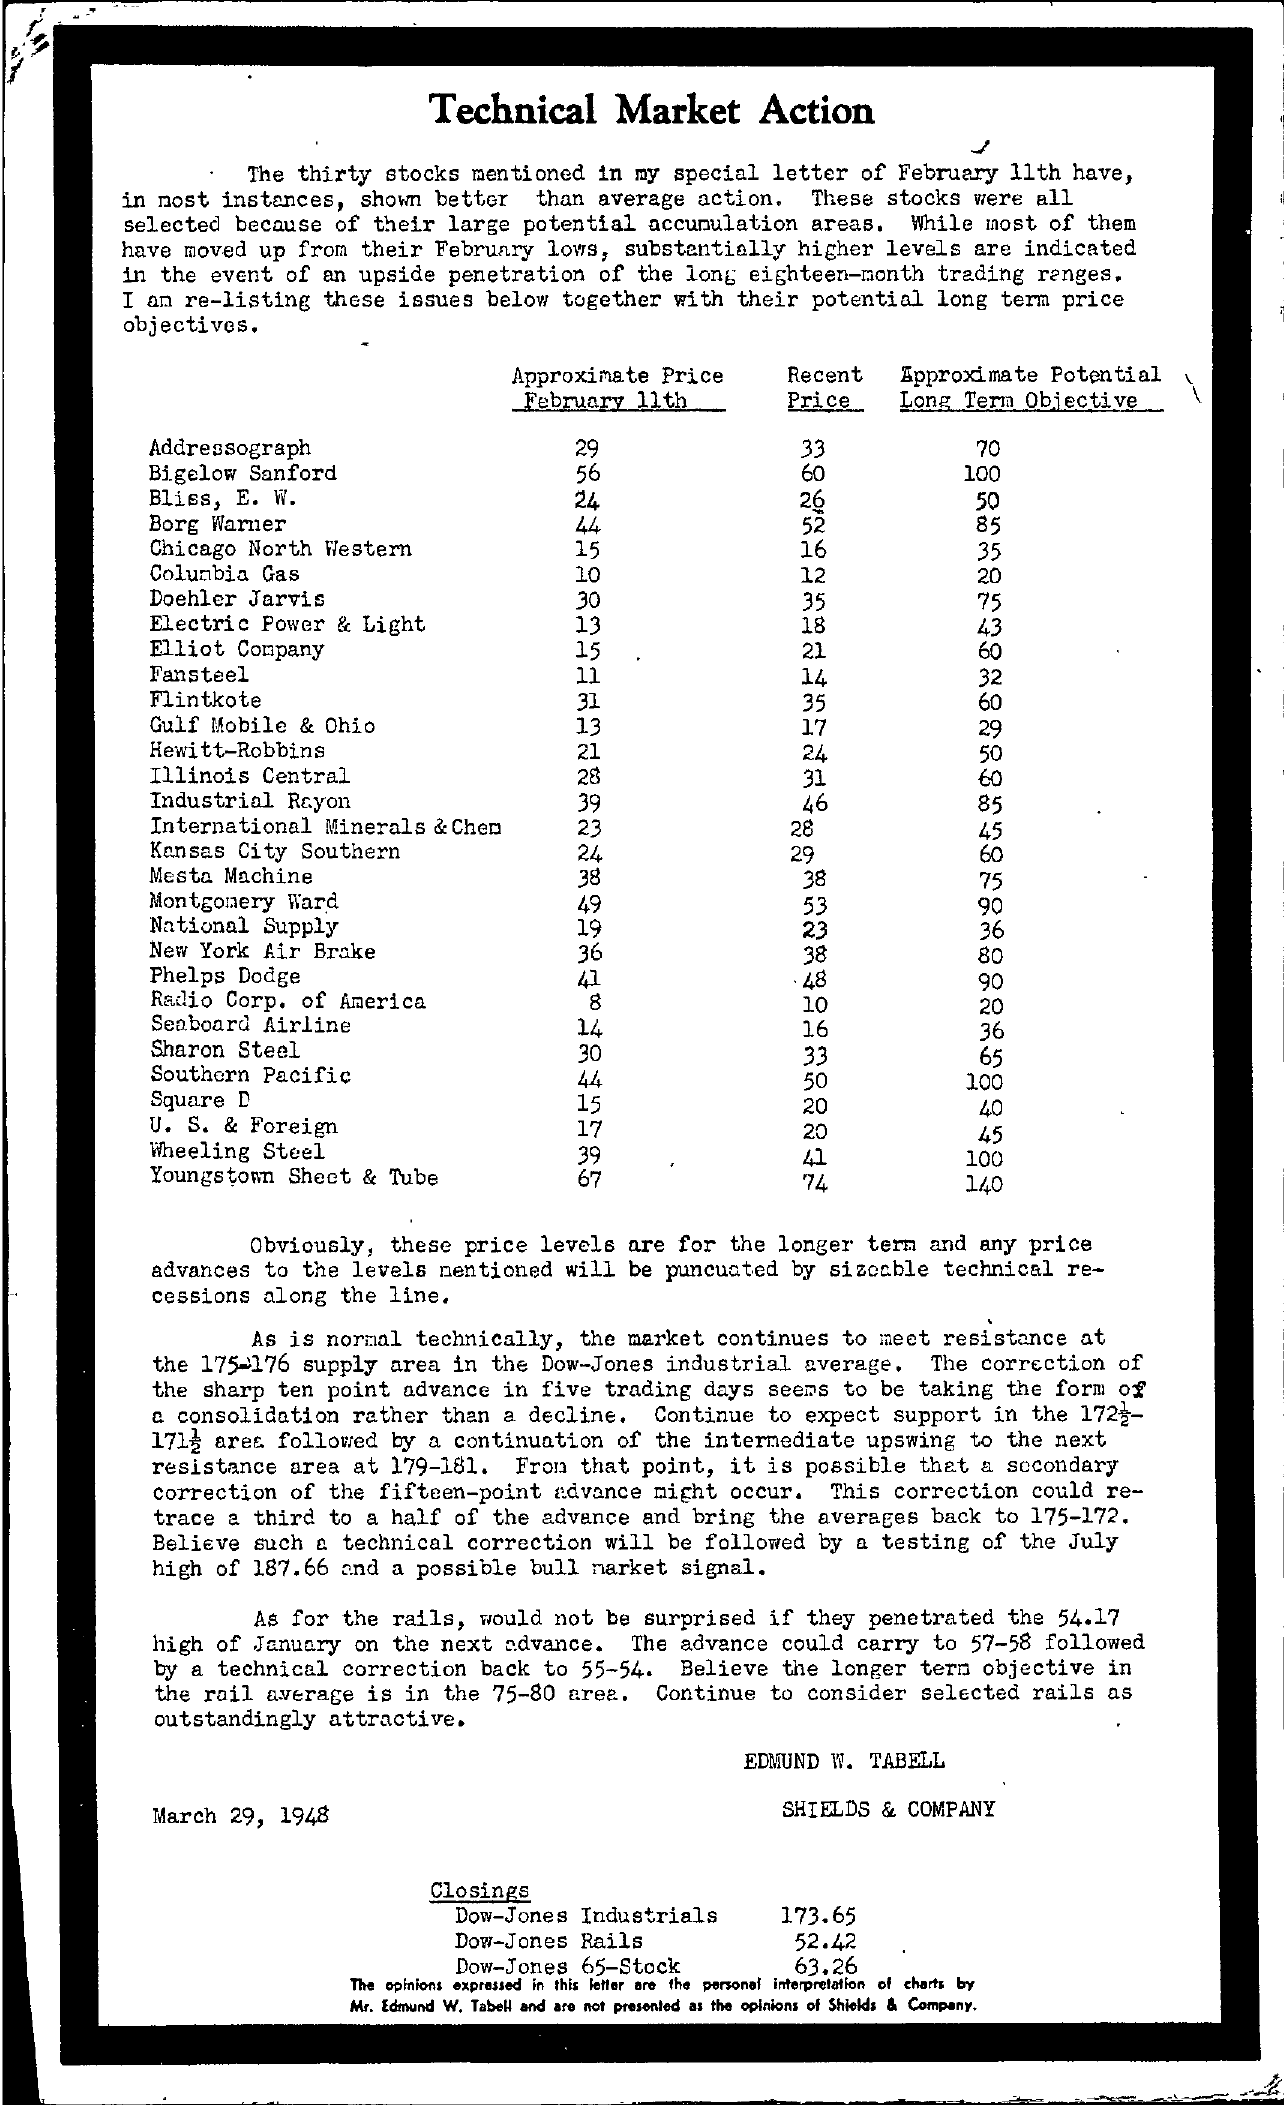 Tabell's Market Letter - March 29, 1948